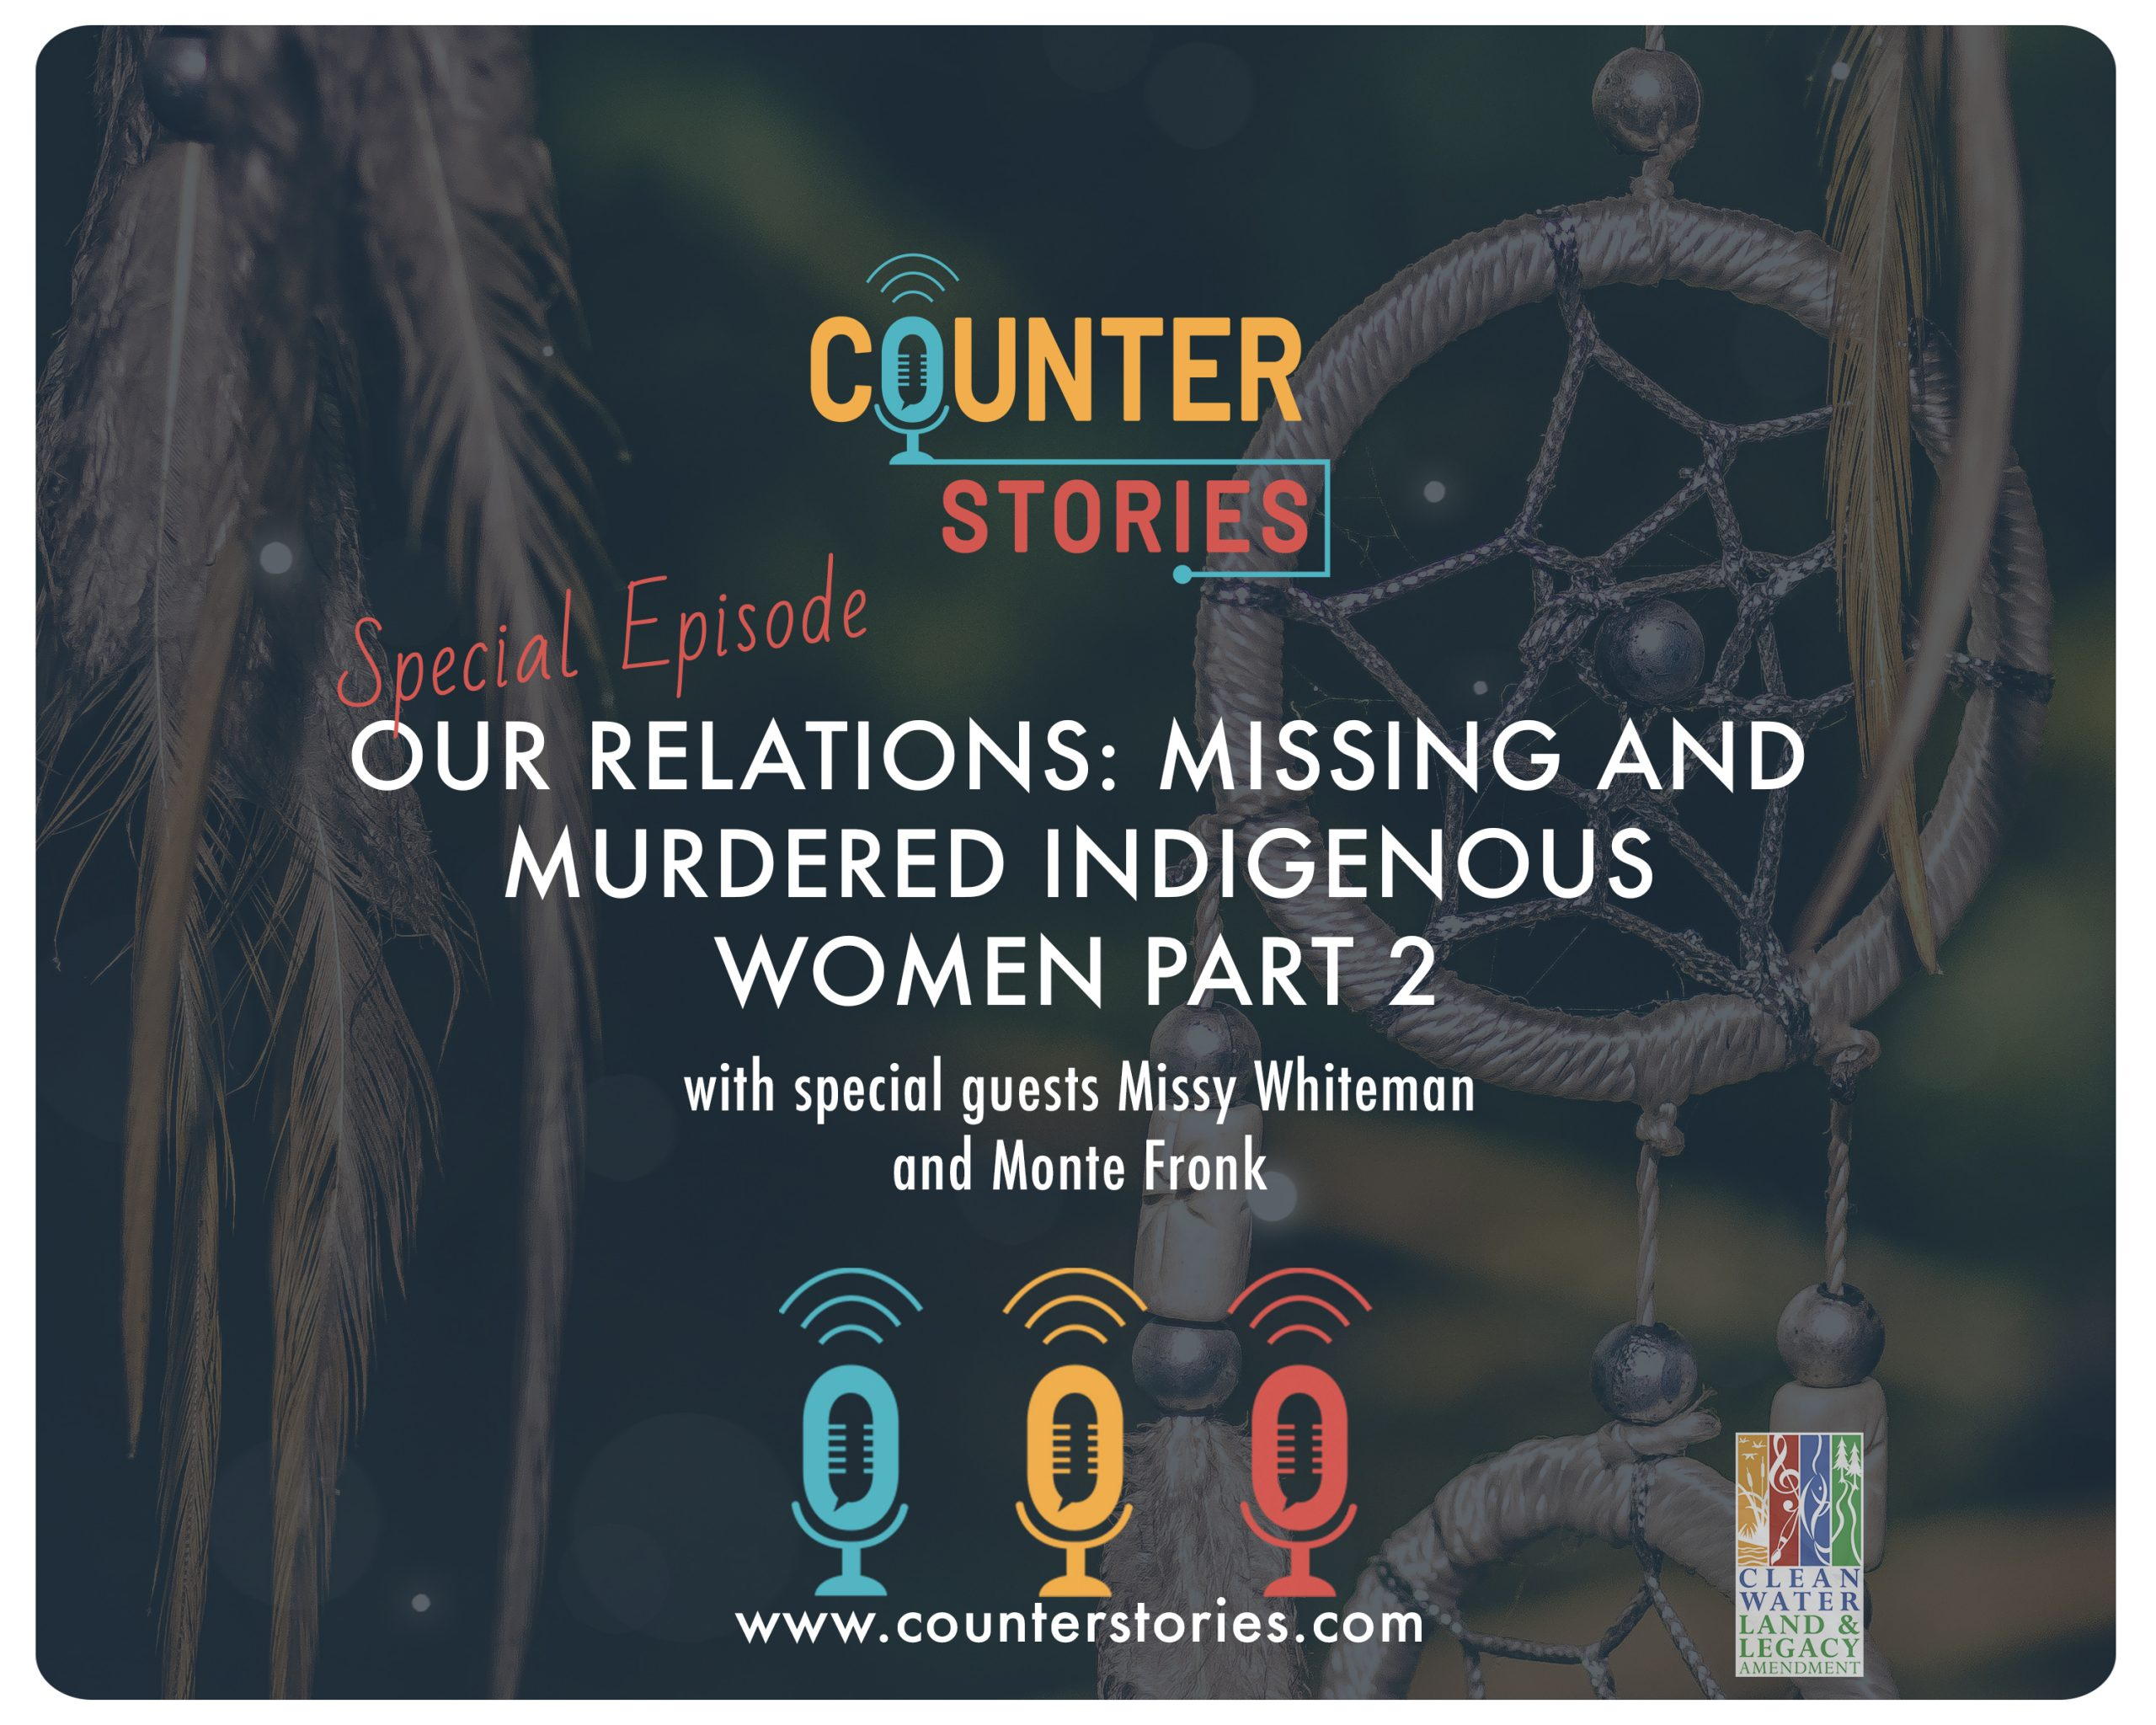 Our Relations: Missing and Murdered Indigenous Women Pt. 2